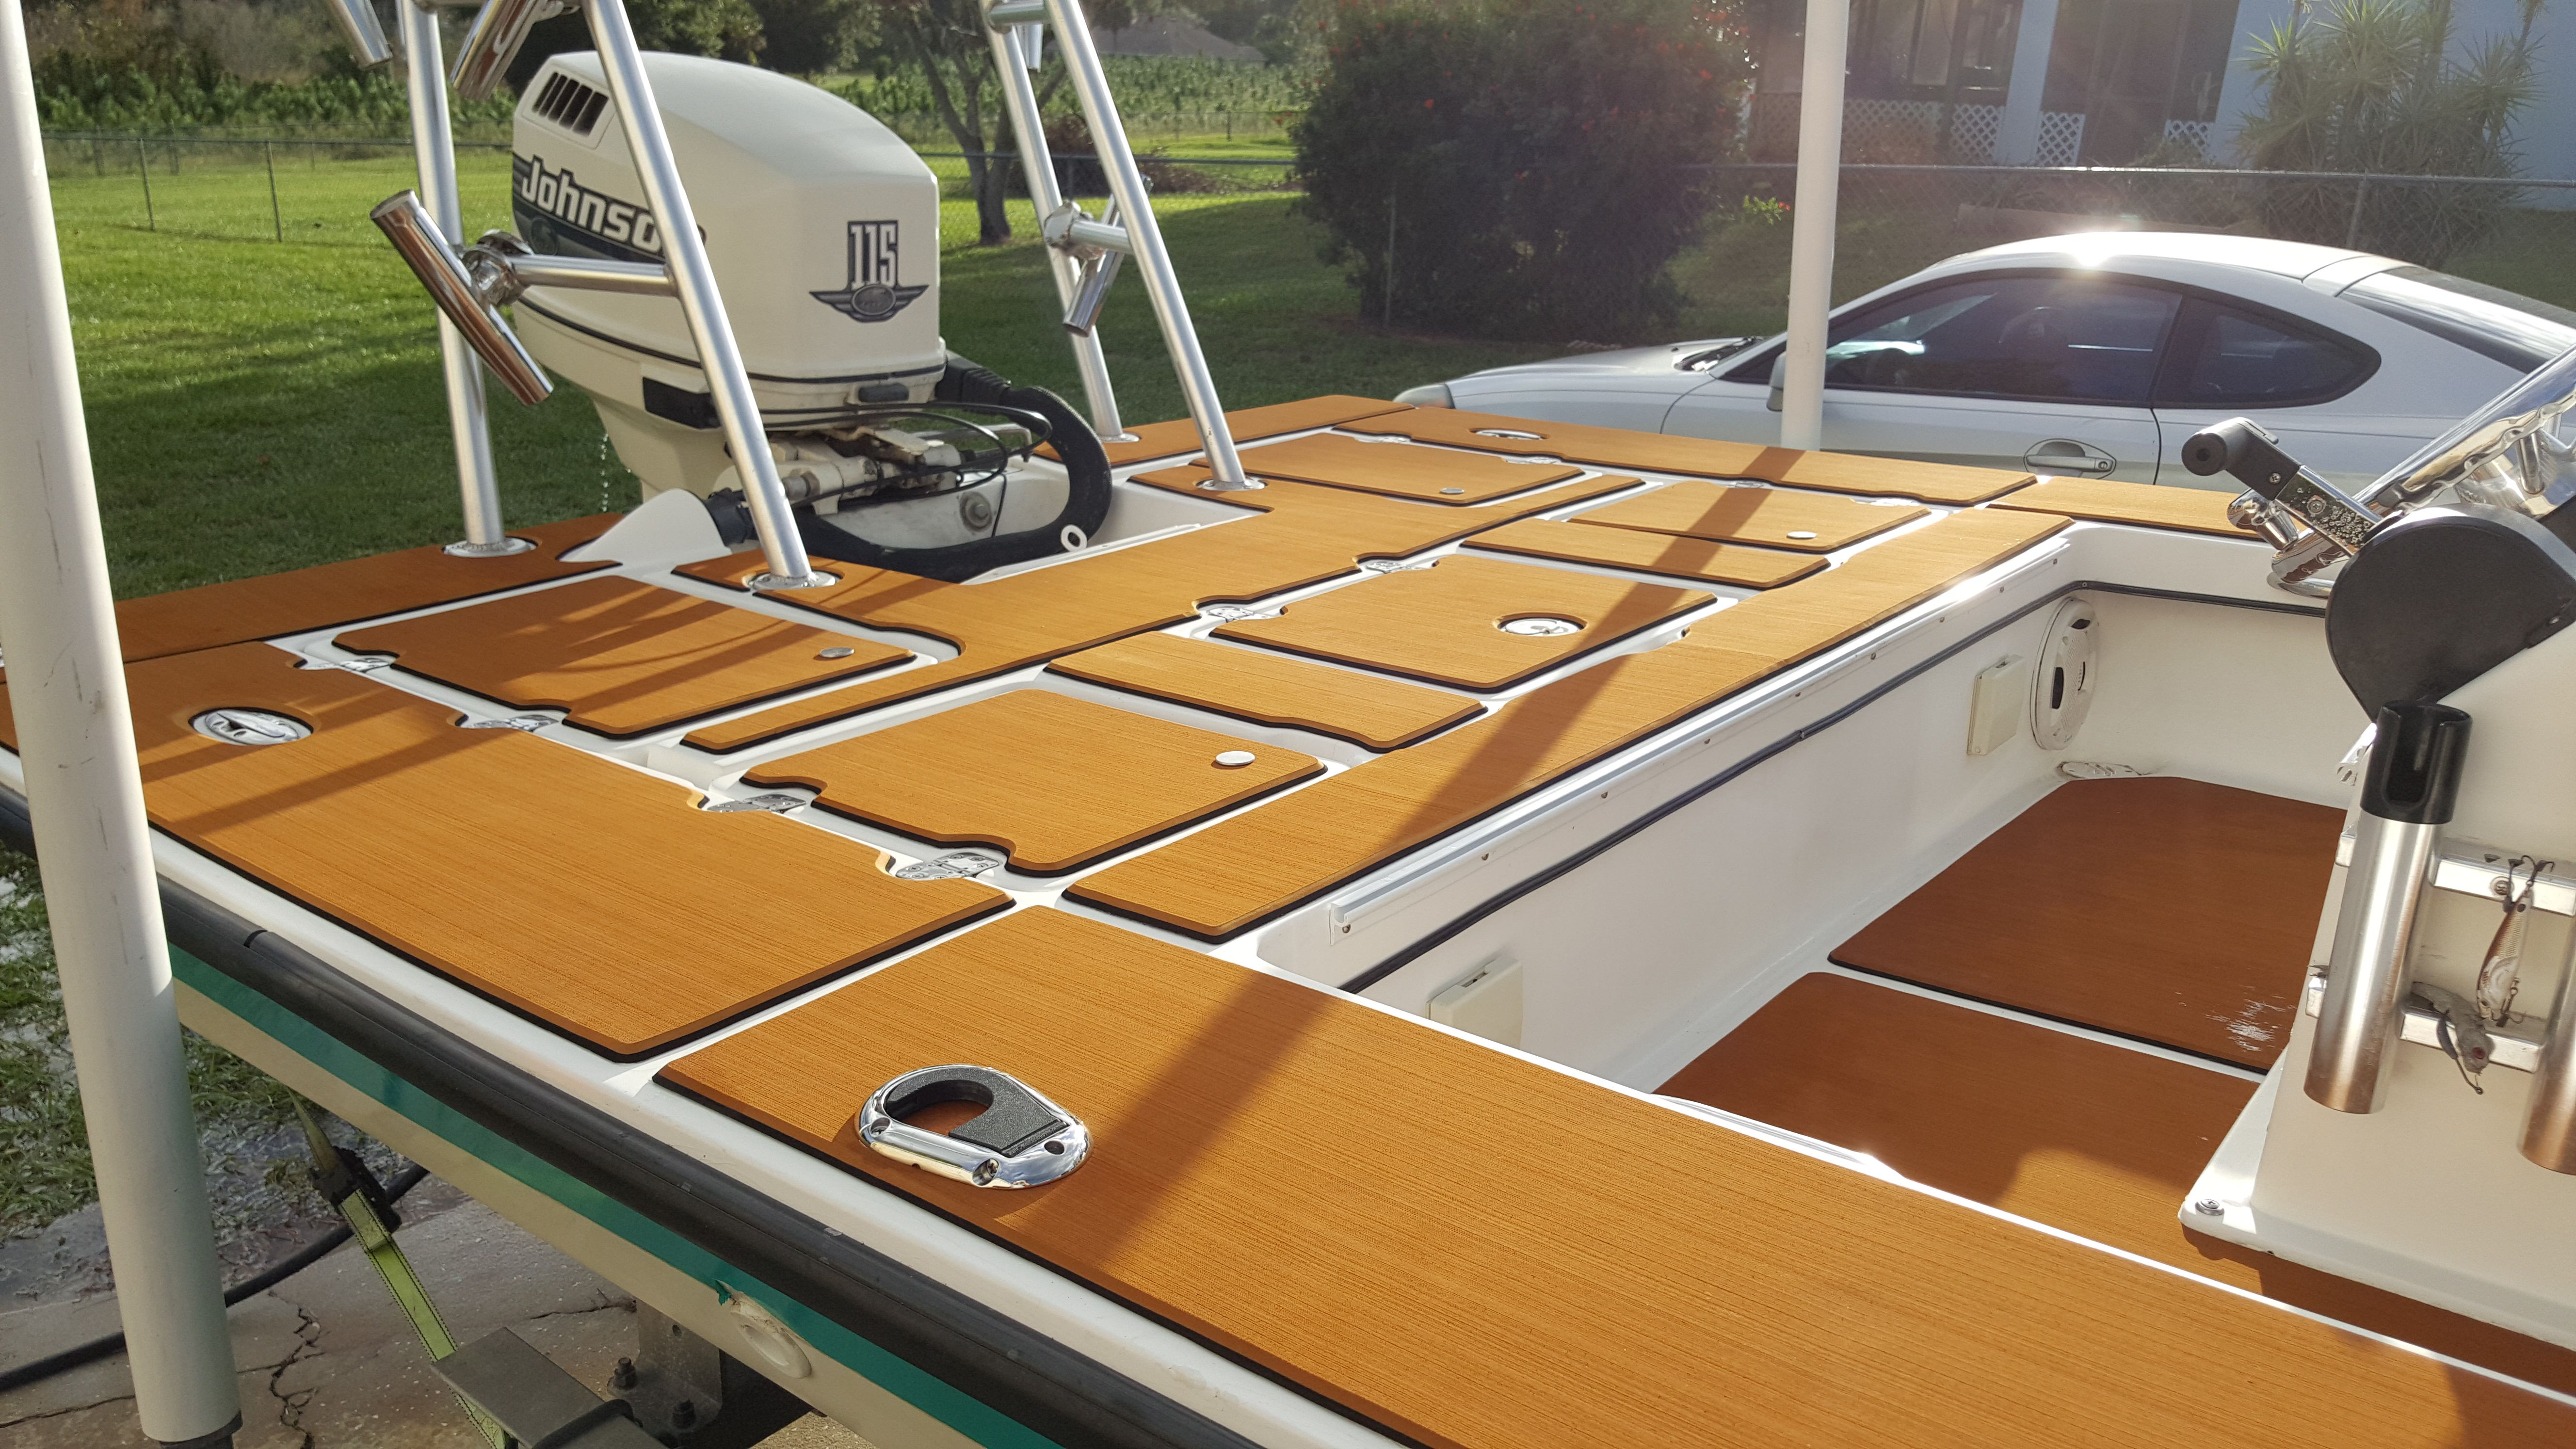 Mordek Has Develop Dual Layer Eva Sheet To Work As Boat Deck Mat Here Is One Of Testimonial For Our Boat Deck M Marine Flooring Foam Factory Natural Teak Wood